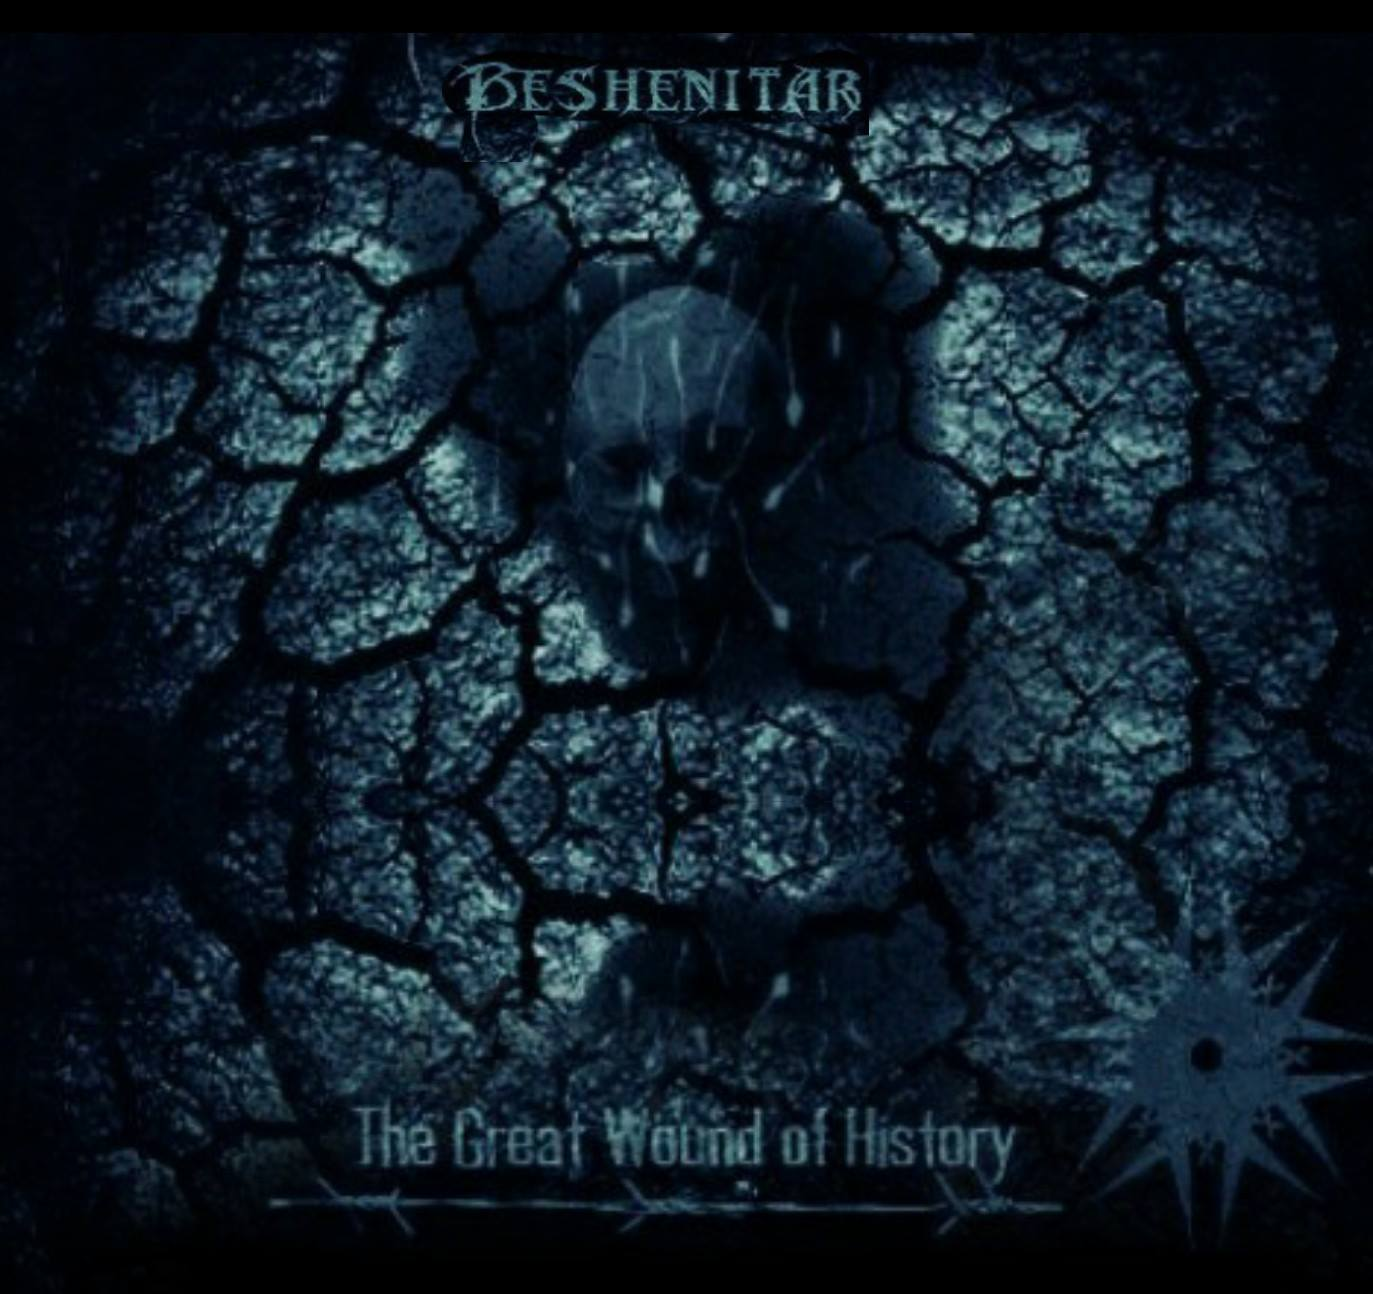 """Review: Beshenitar  """"The Great Wound of History"""" [Depressive Illusions Records]"""